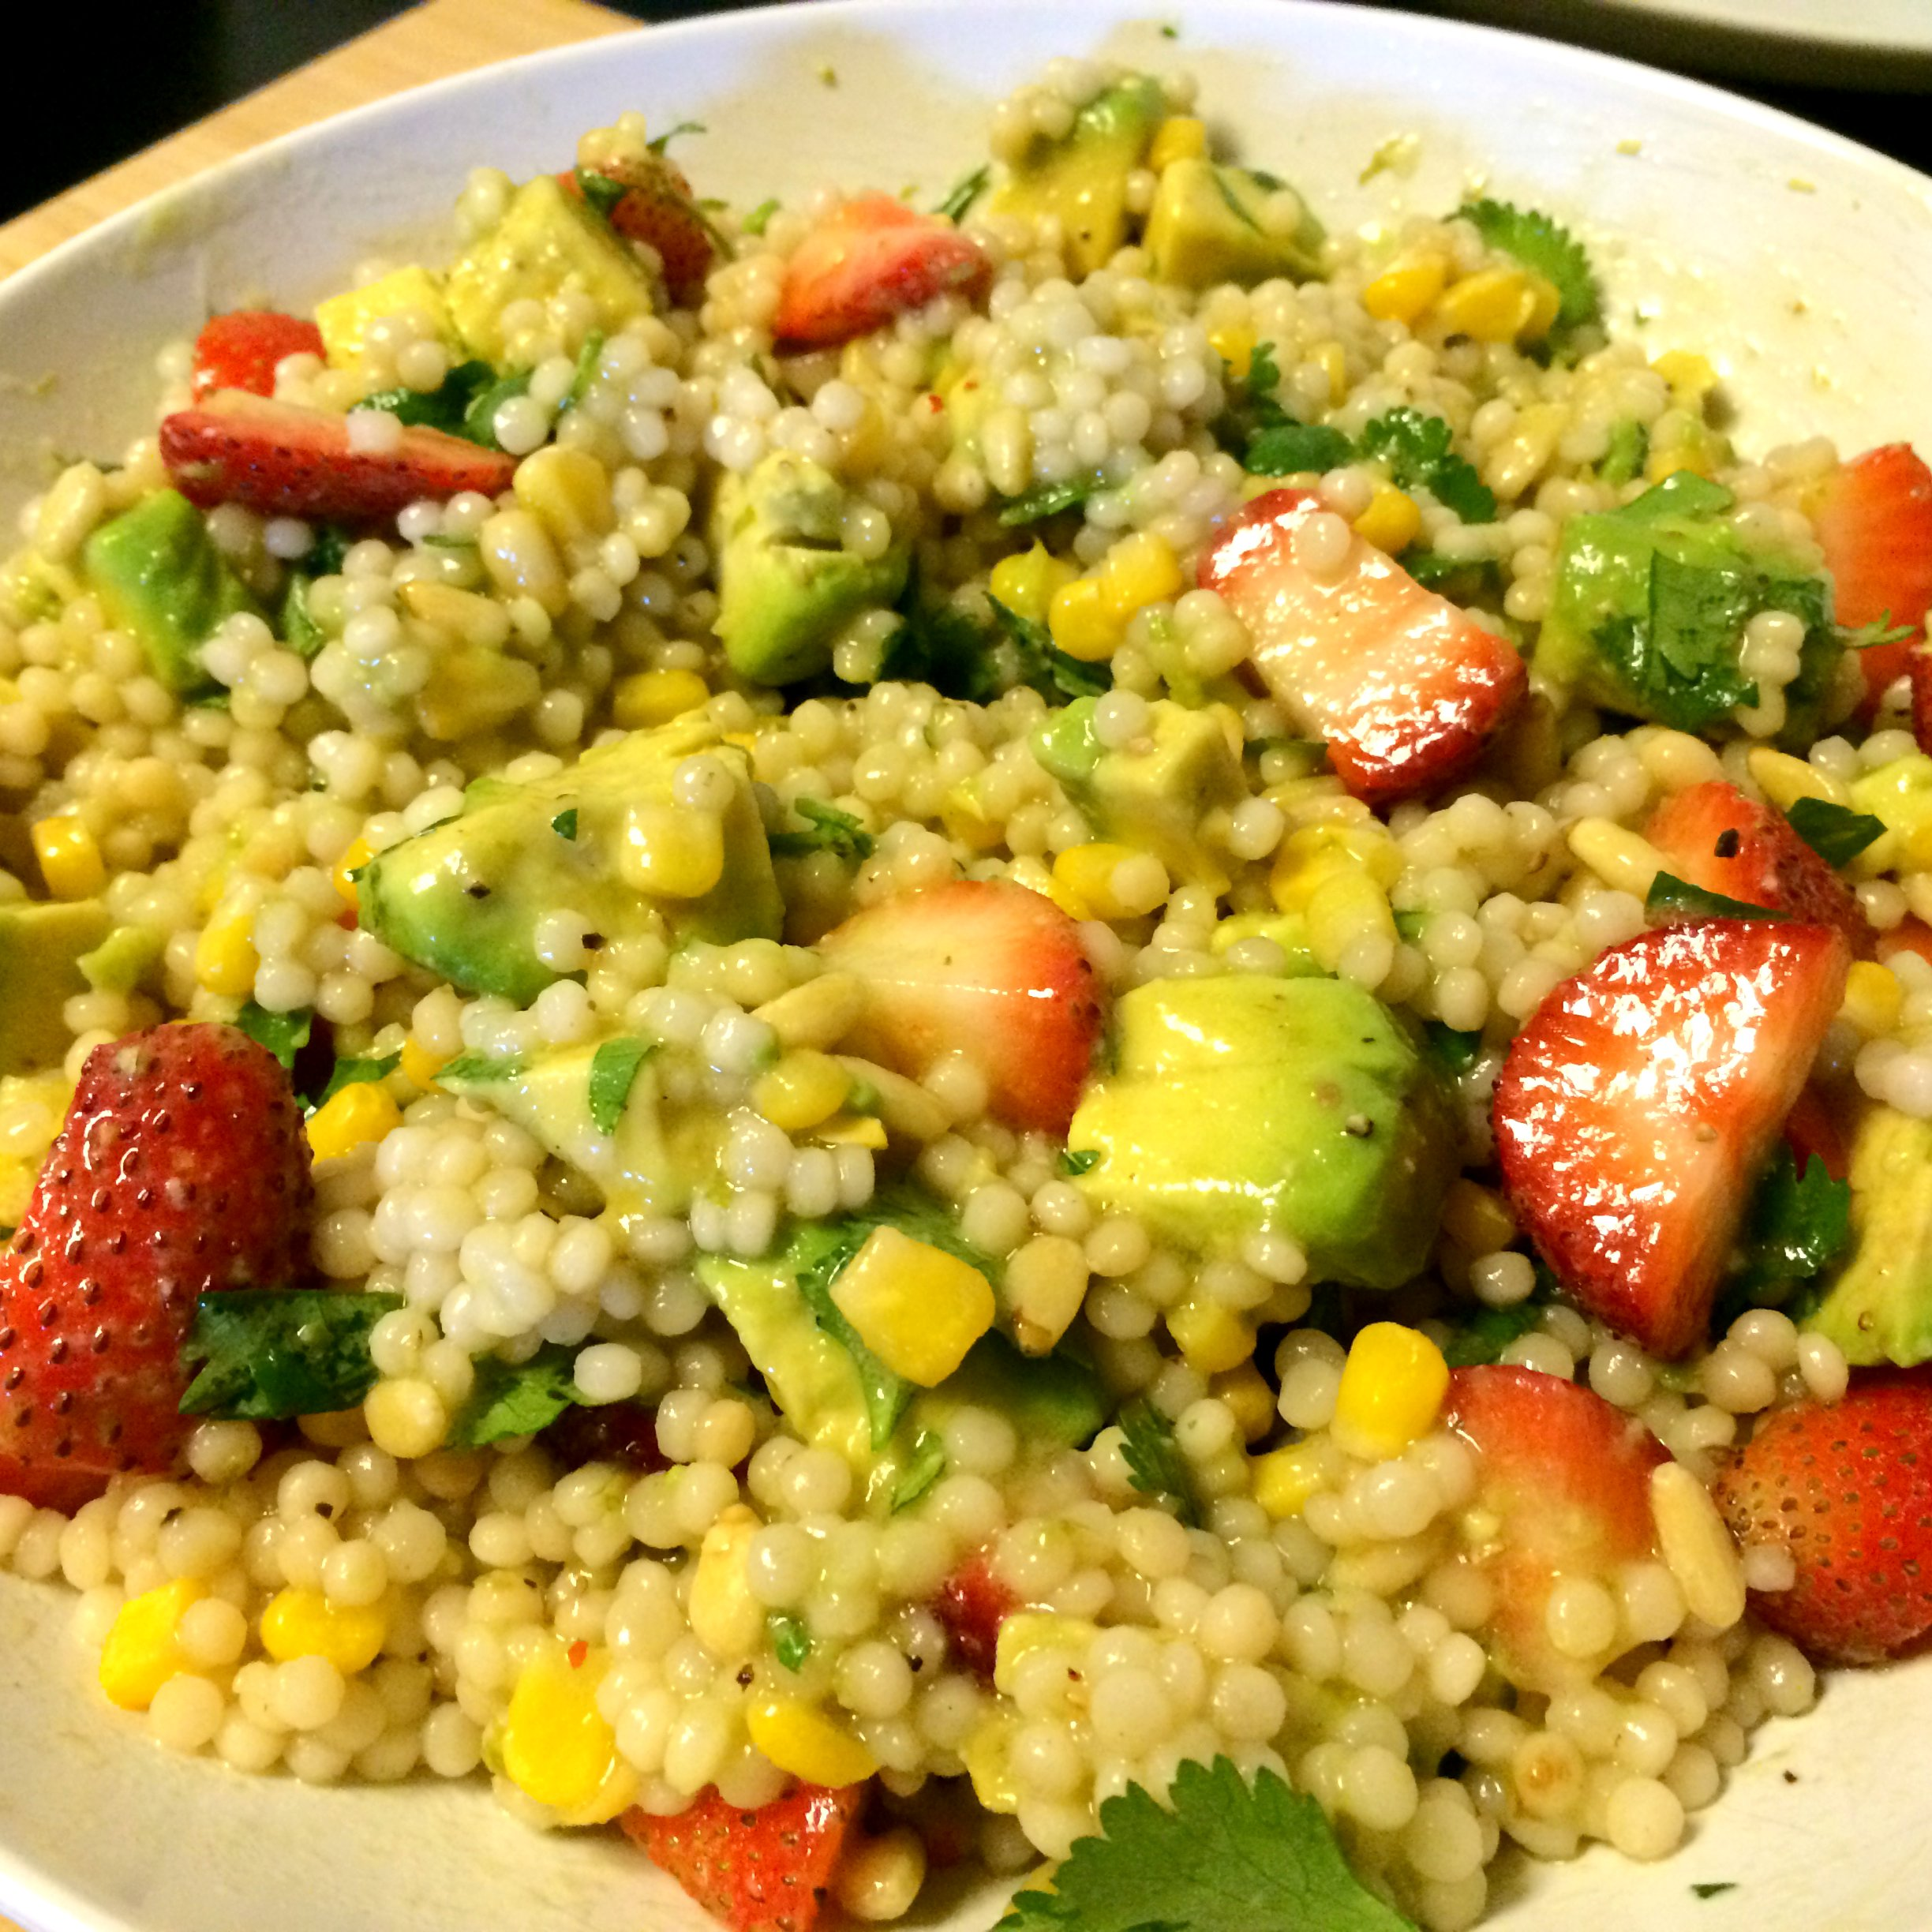 Berry and Avocado Couscous with Lime Vinaigrette